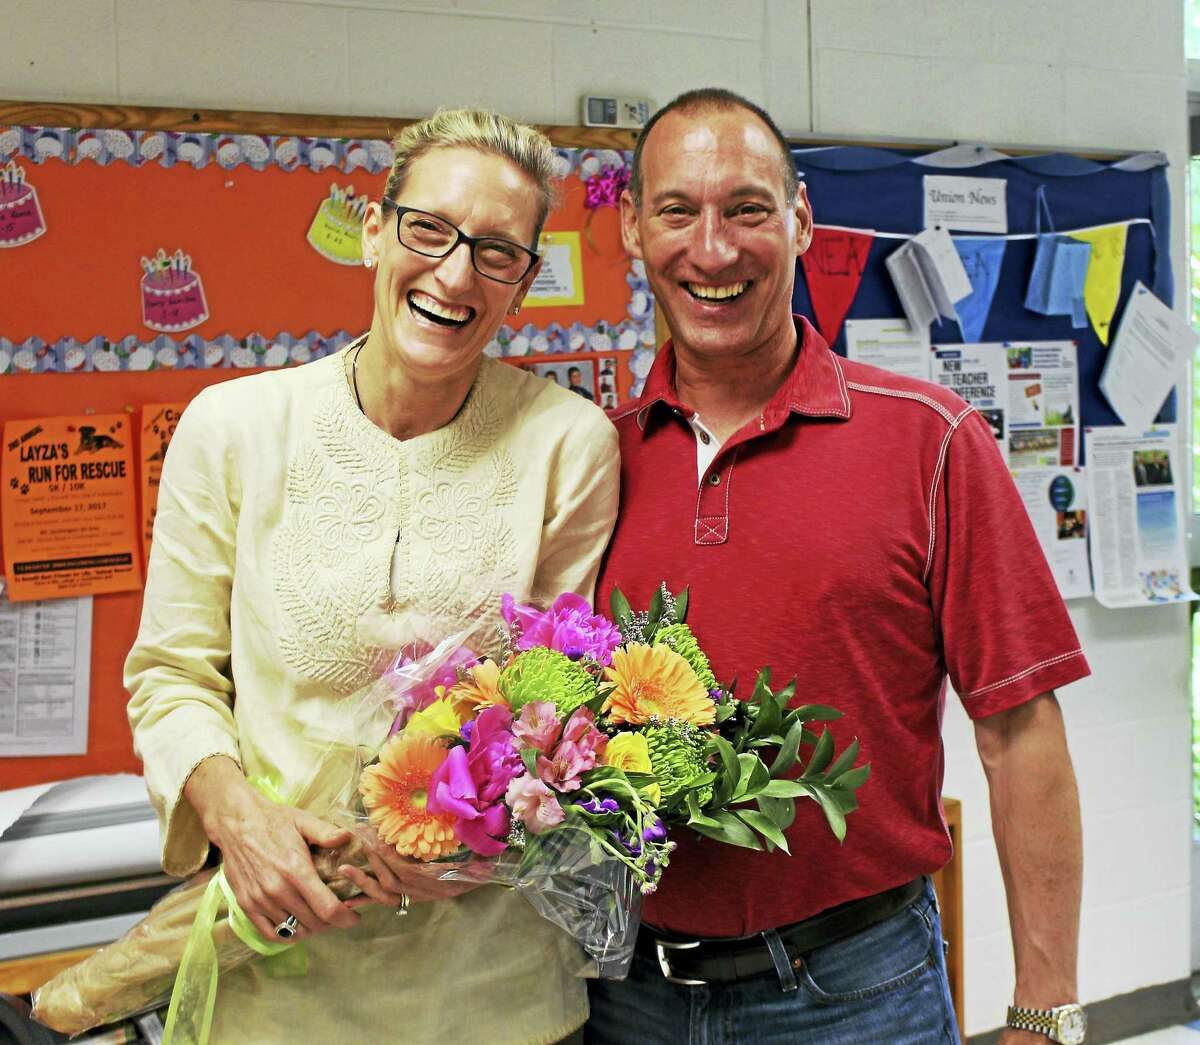 Patti Smaldone and her husband Mark were thrilled to learn she had been named Region 10's Teacher of the Year.